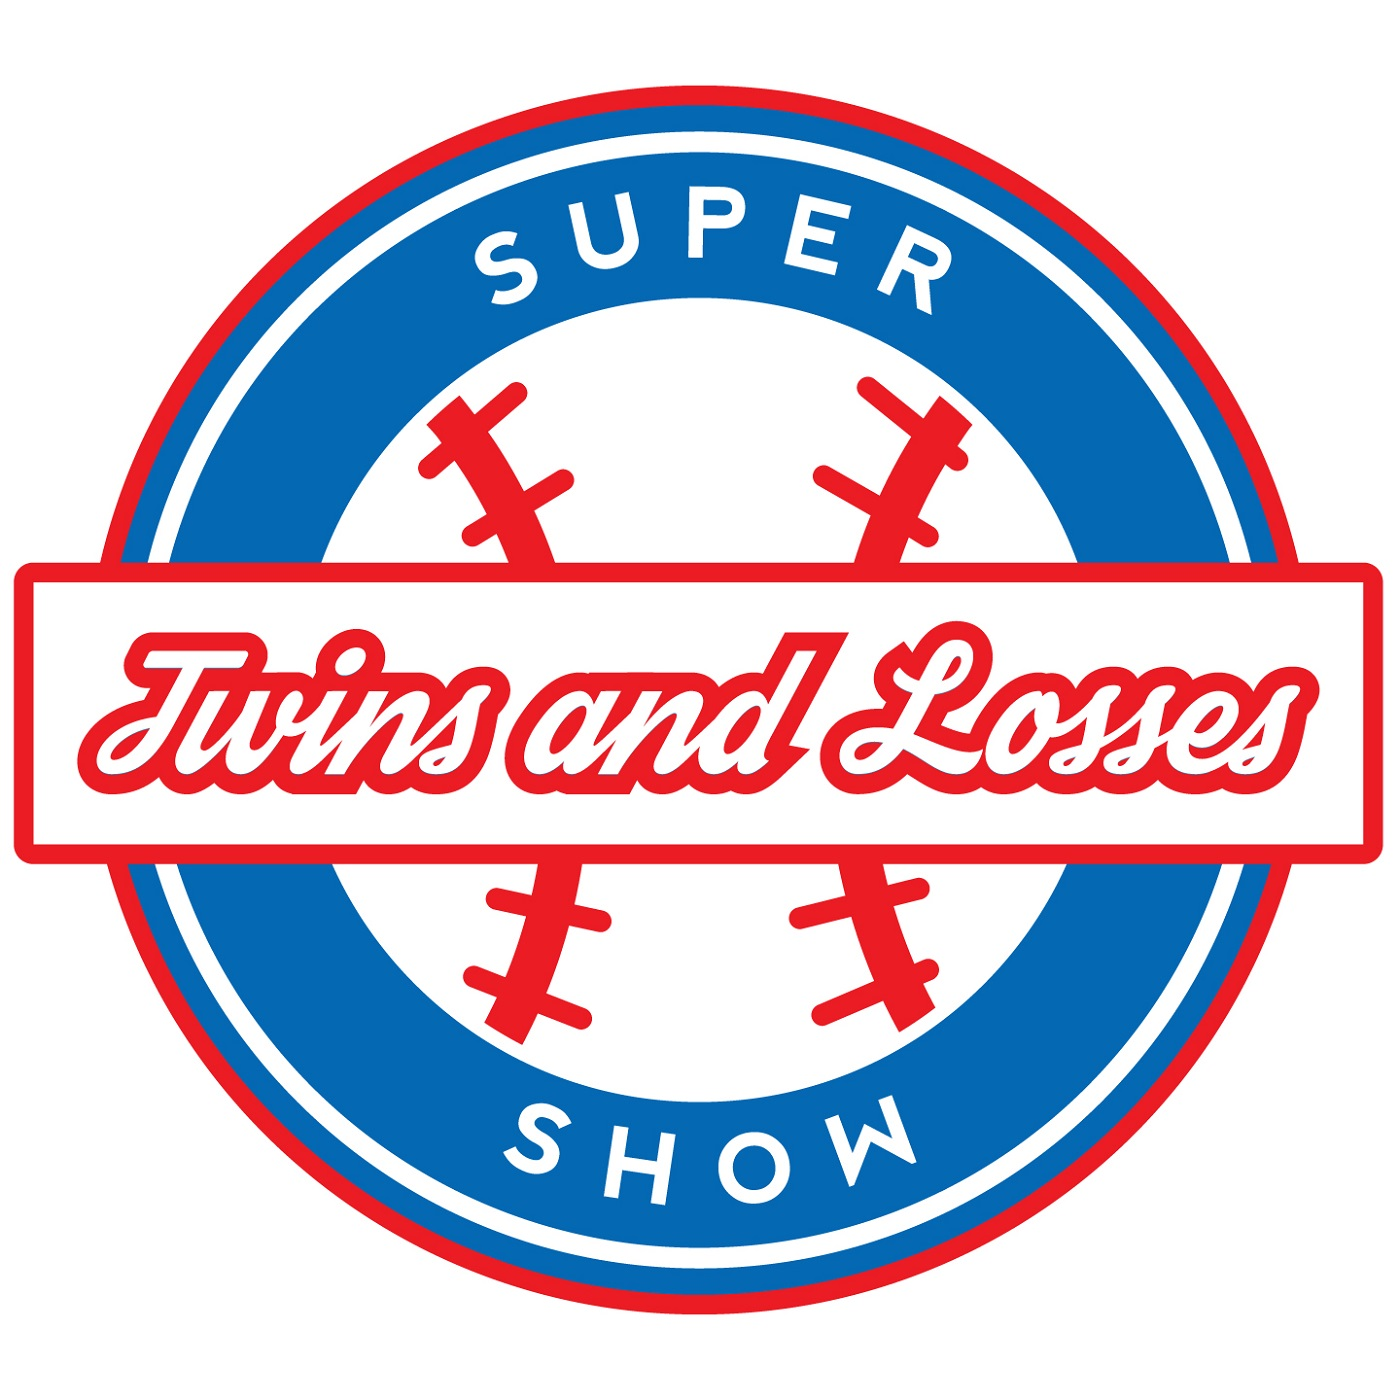 Twins and Losses Supershow